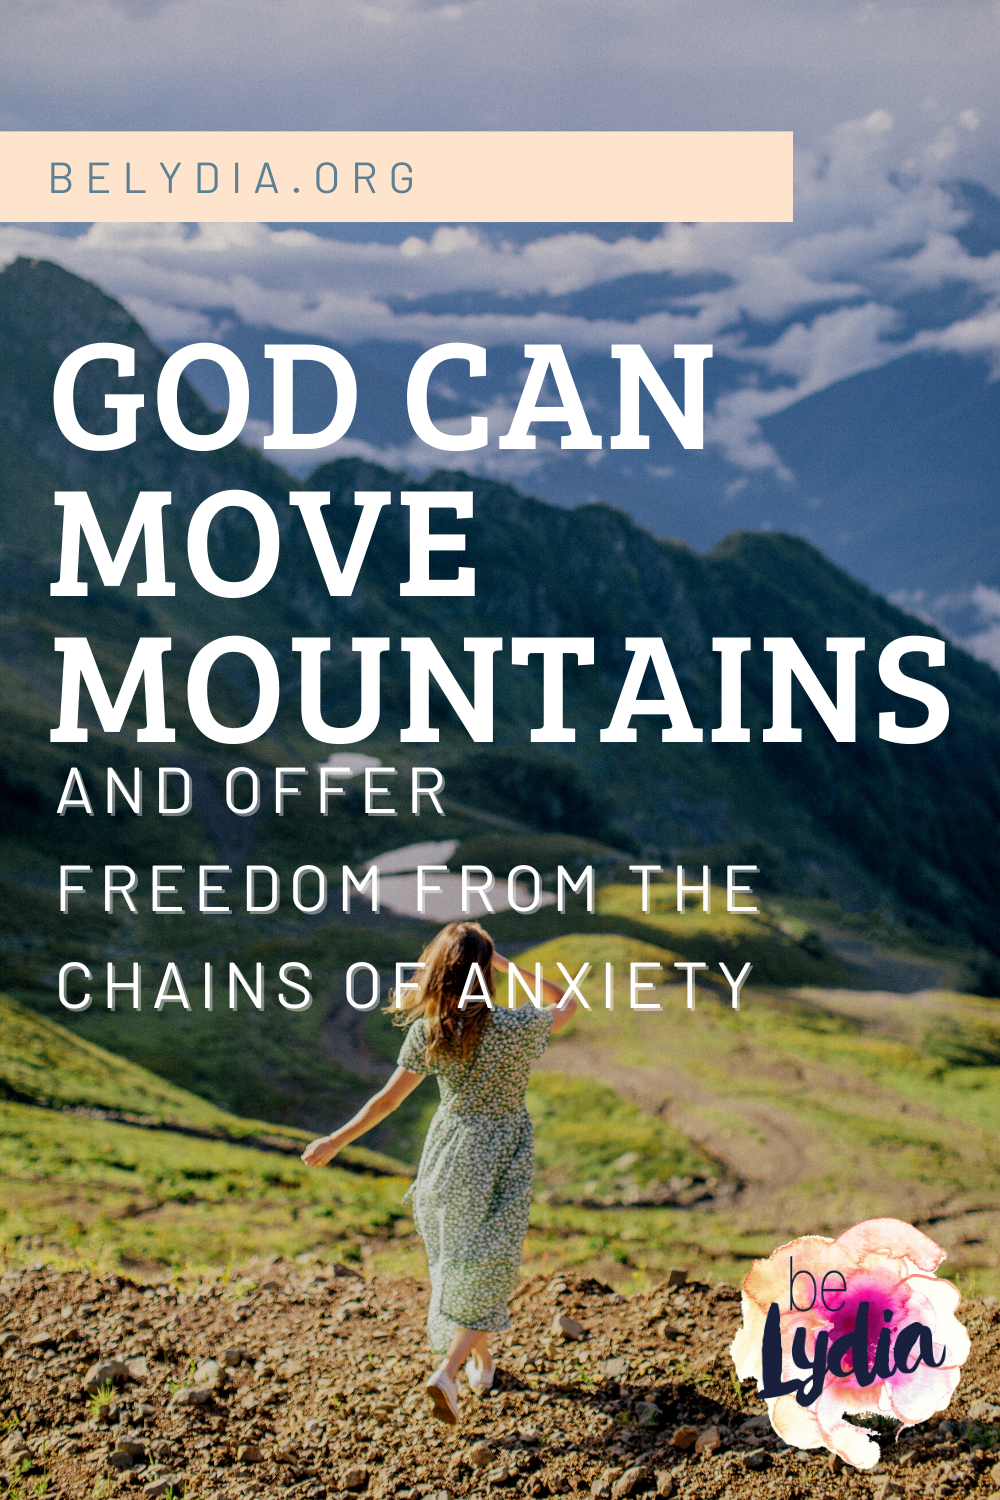 I believed in God and had even given my life to him and yet, I didn't walk in freedom. I was bound by these heavy chains  that reminded me of my past over and over again every single day.  This left me questioning, where was God? I needed Freedom!